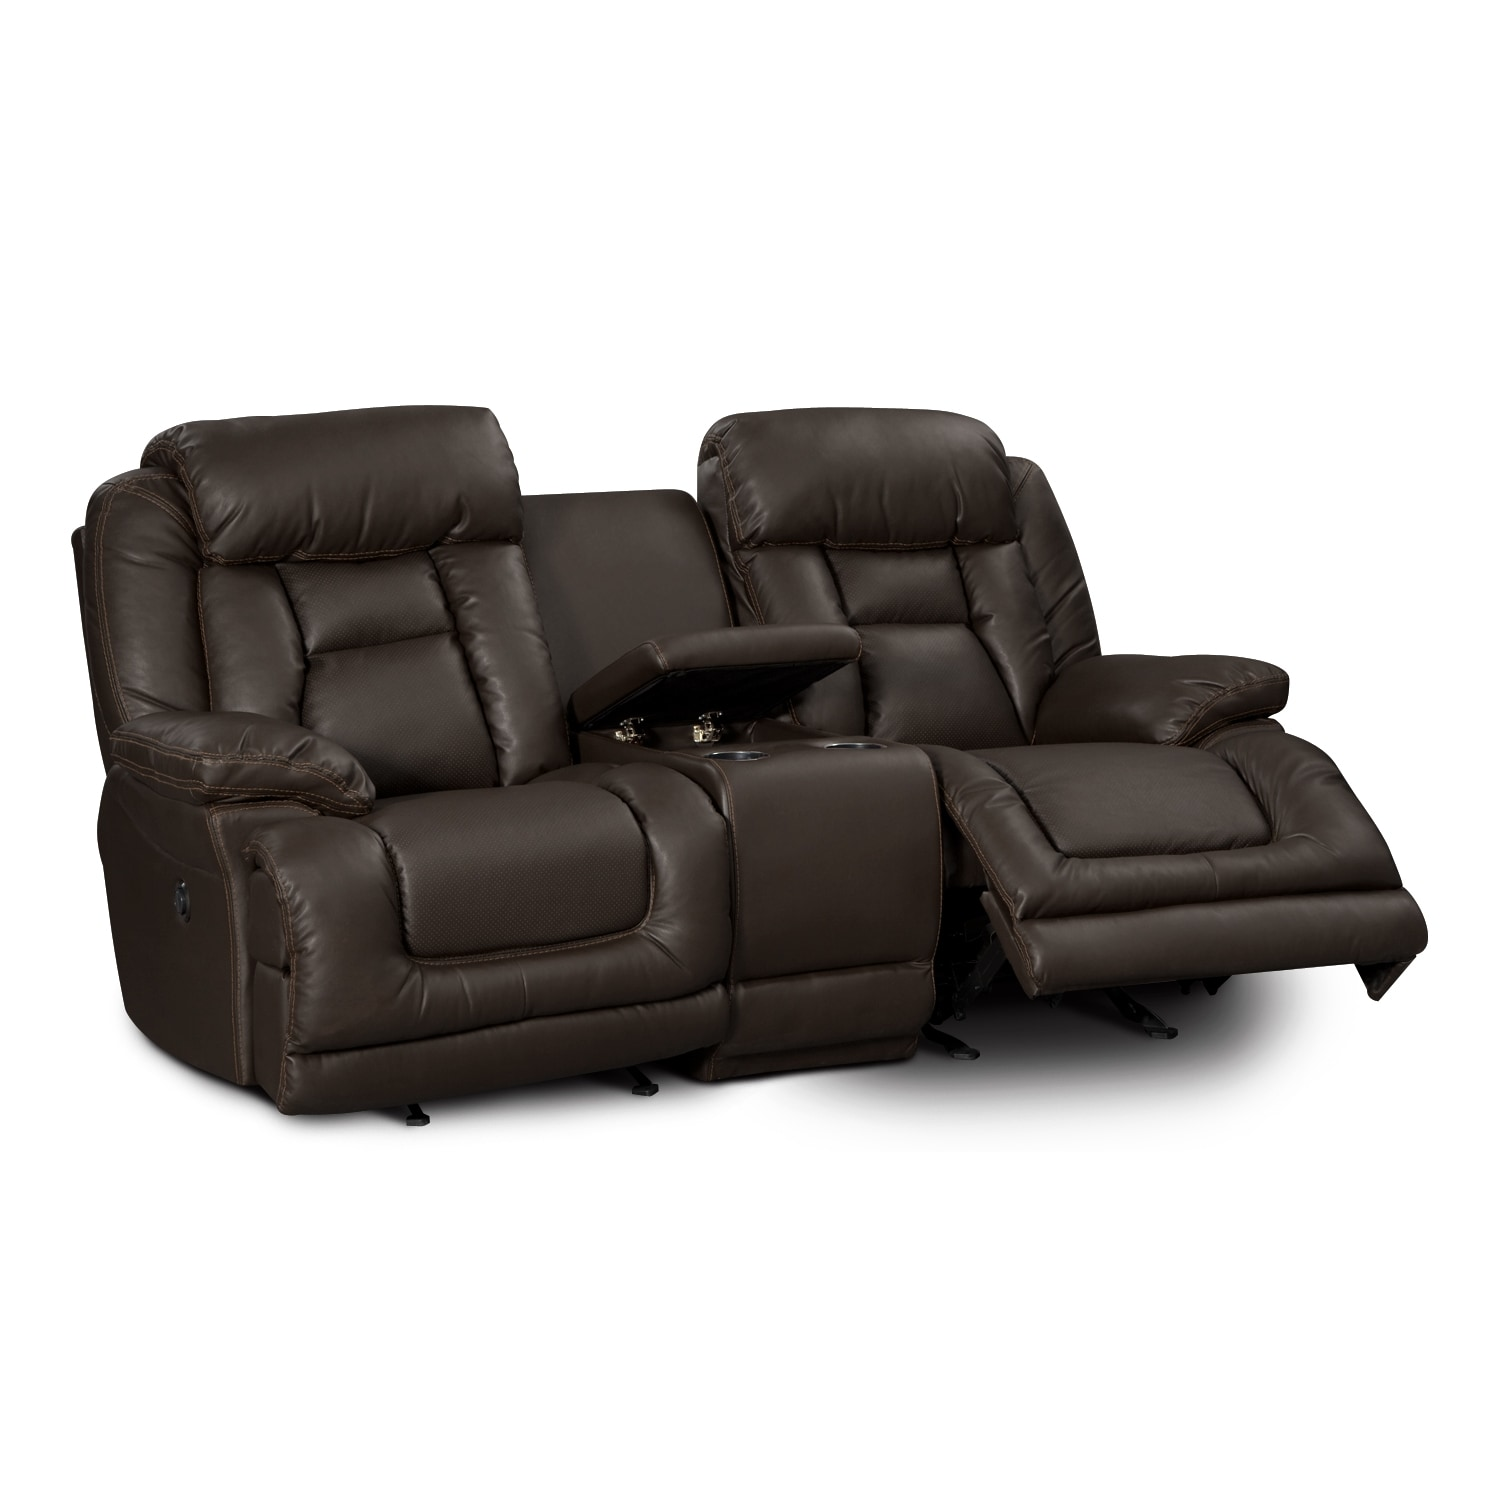 Furnishings for every room online and store furniture sales value city furniture Reclining loveseat sale